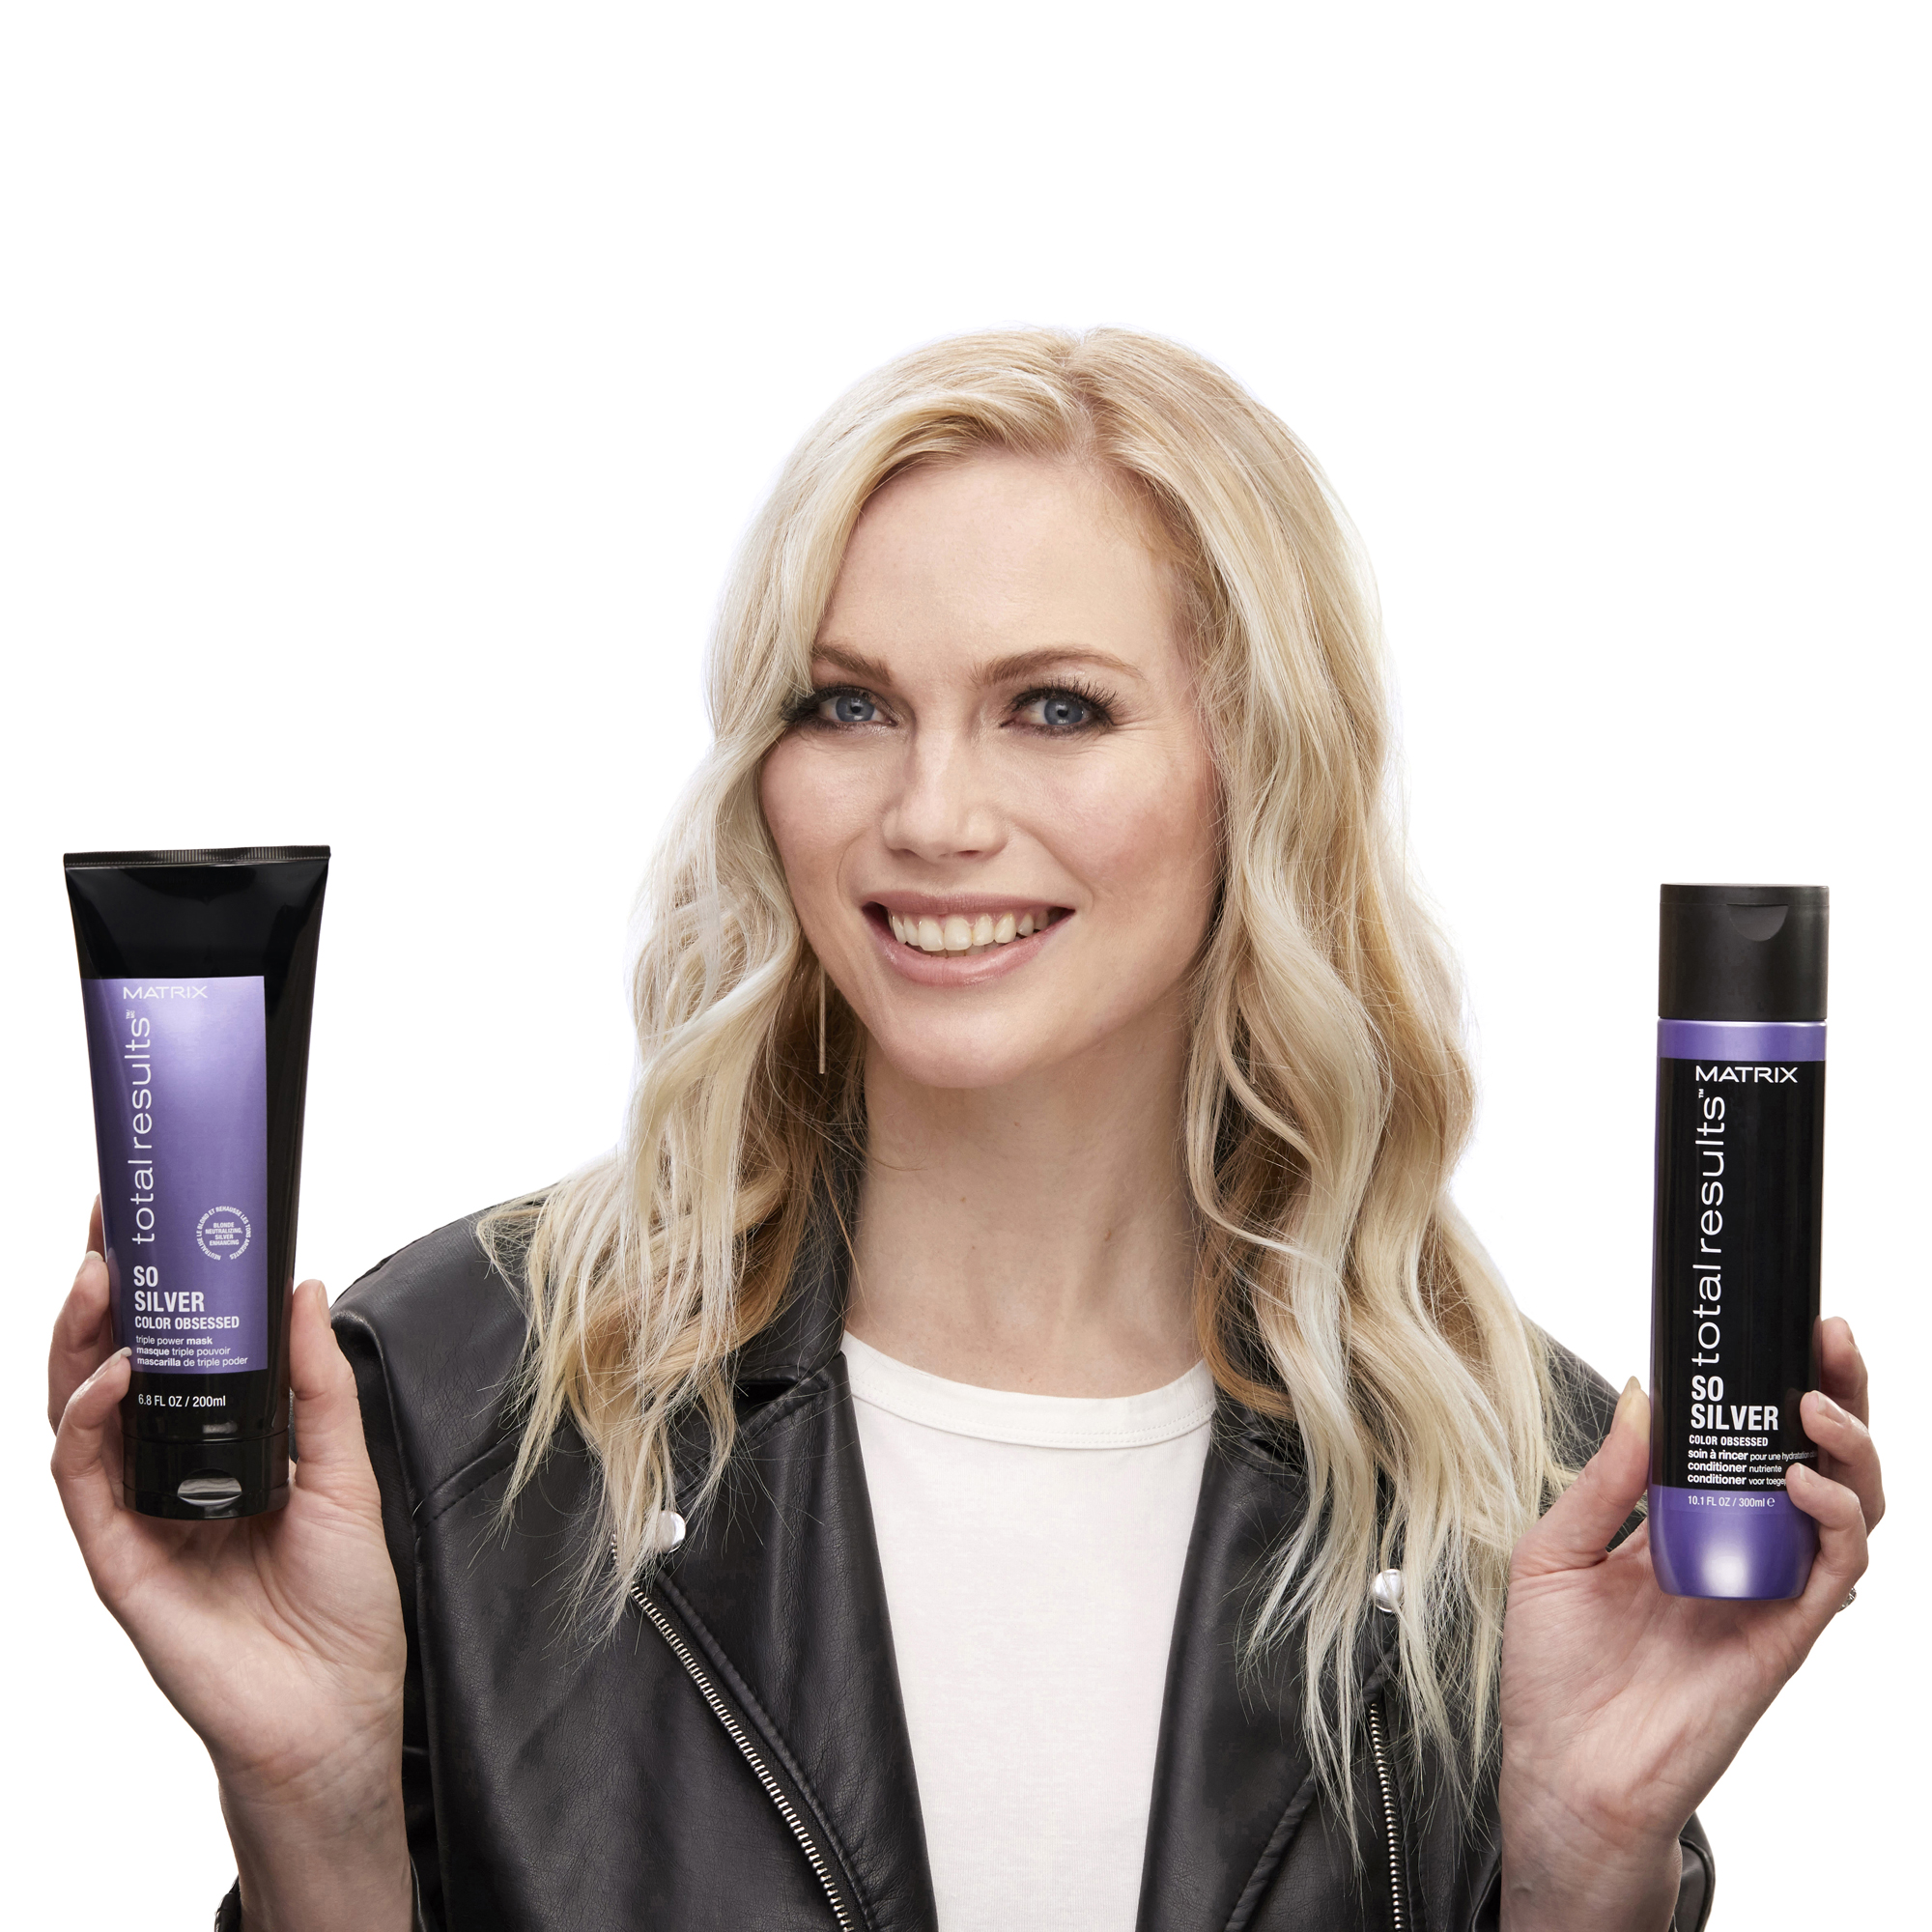 Matrix Completes Total Results So Silver Line with Conditioner and Triple Power Mask